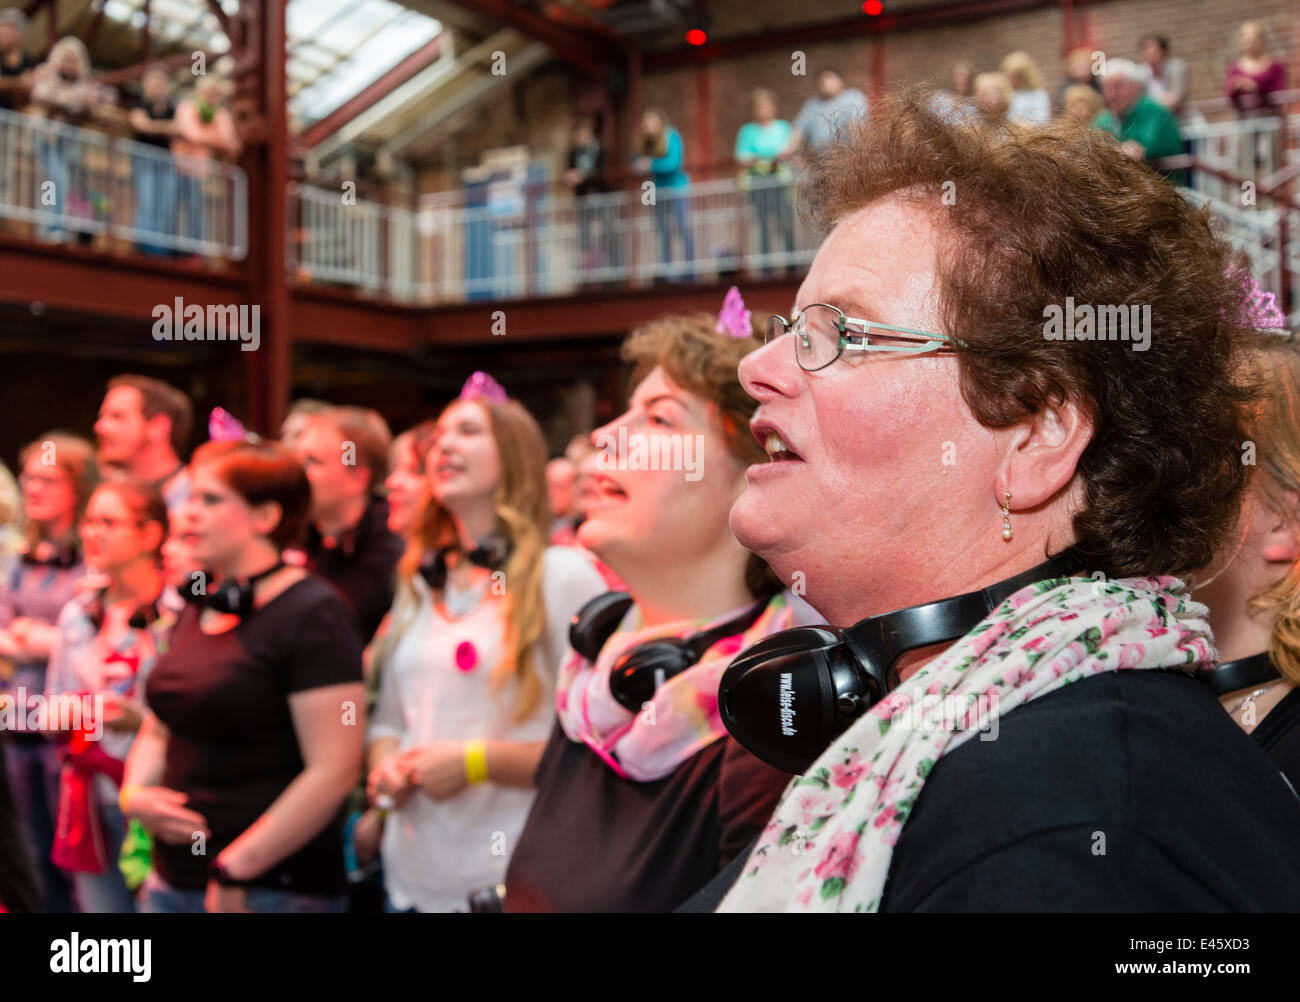 Cheerful participants enjoy 'Rudelsingen', coming together to sing at 'Extraschicht' - the annual - Stock Image